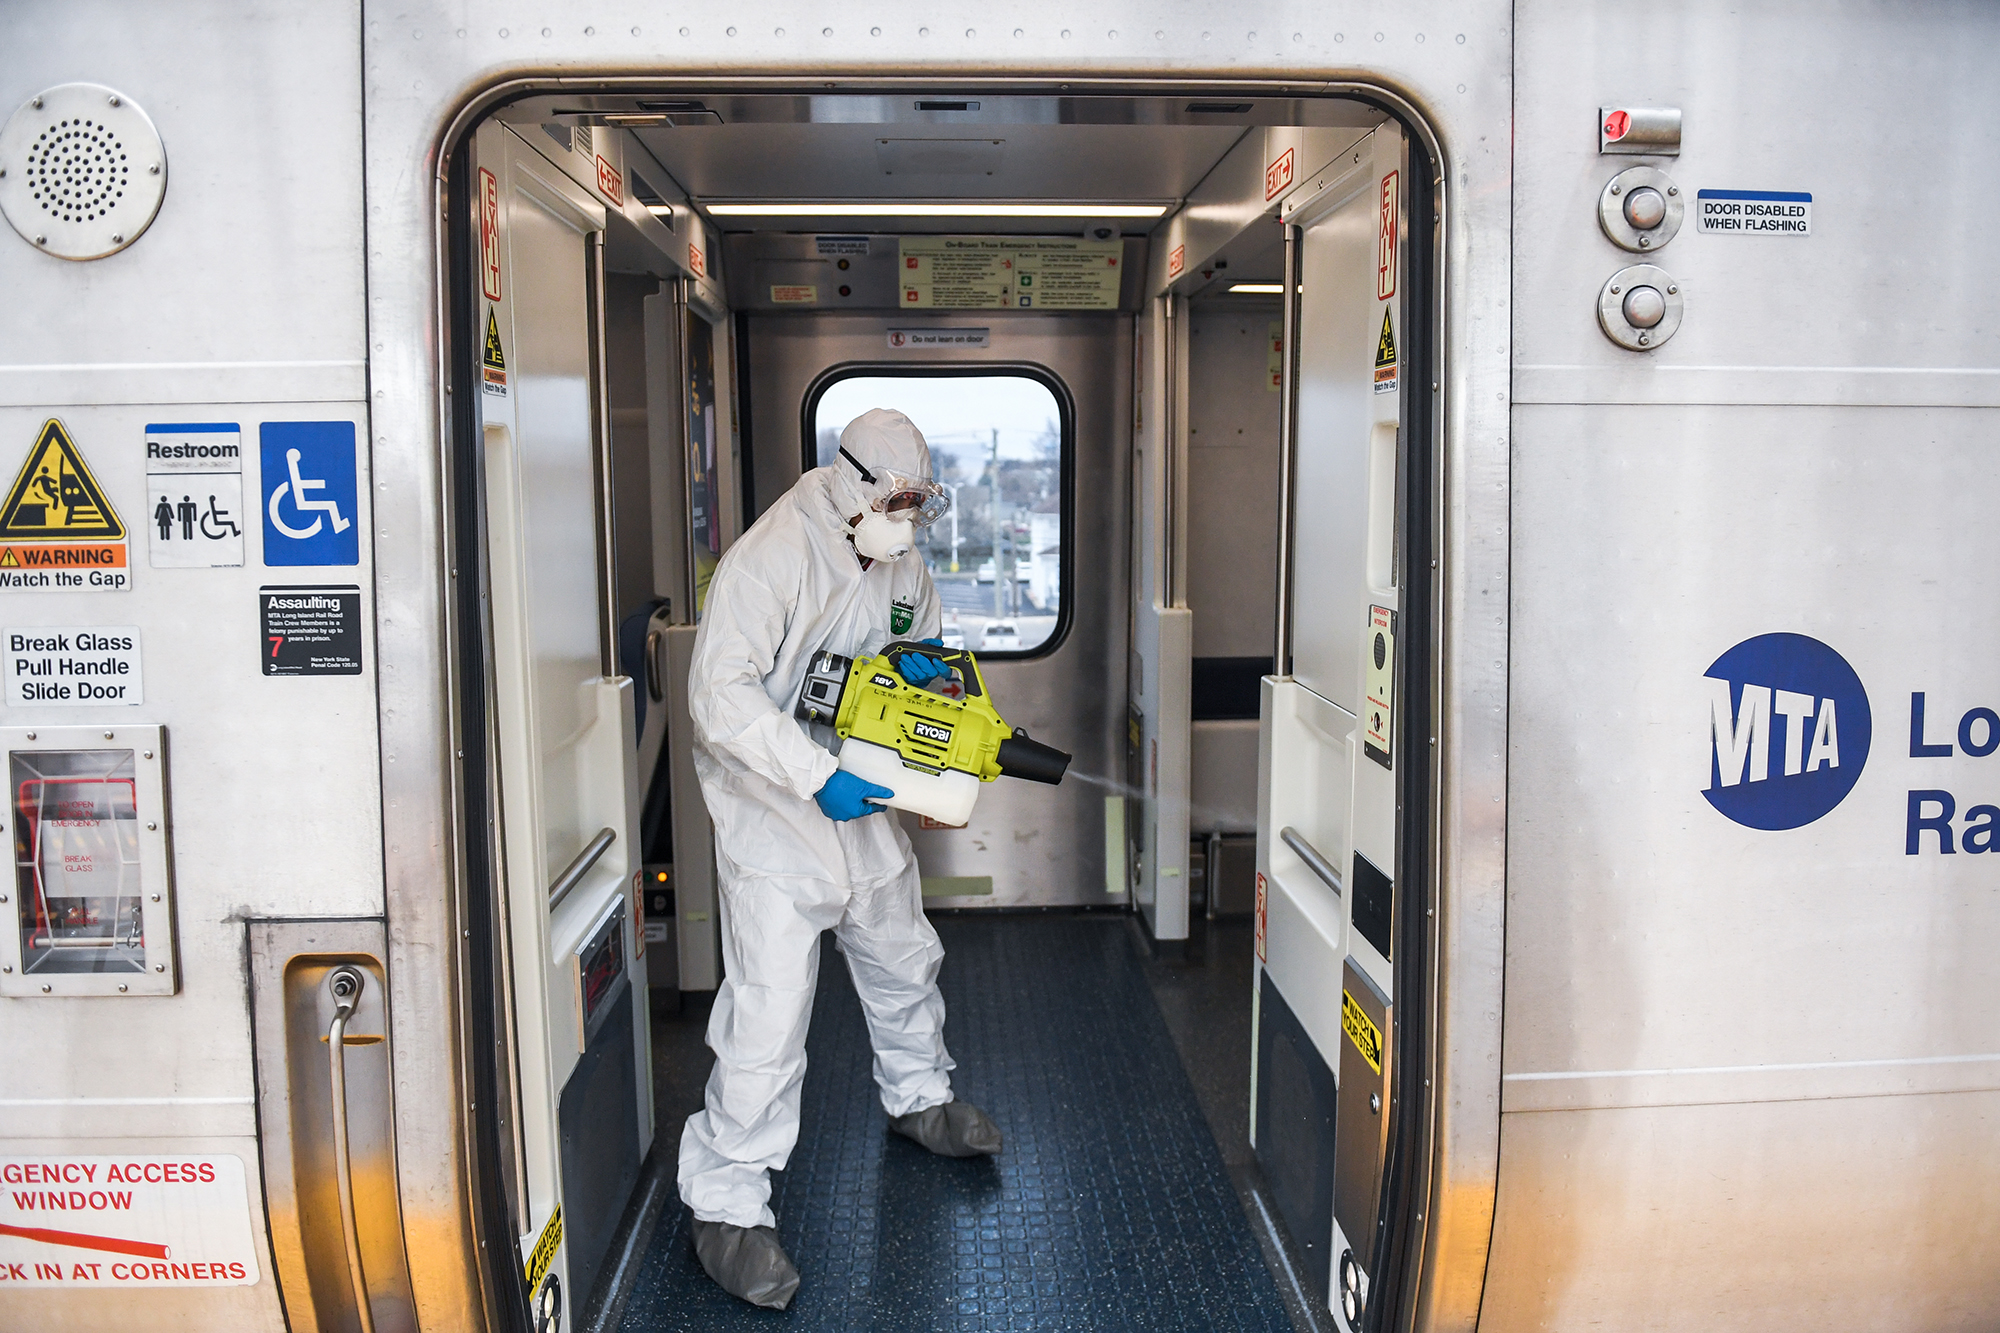 A Long Island Rail Road employee disinfects a train car at the Hicksville, New York, LIRR station on March 19.